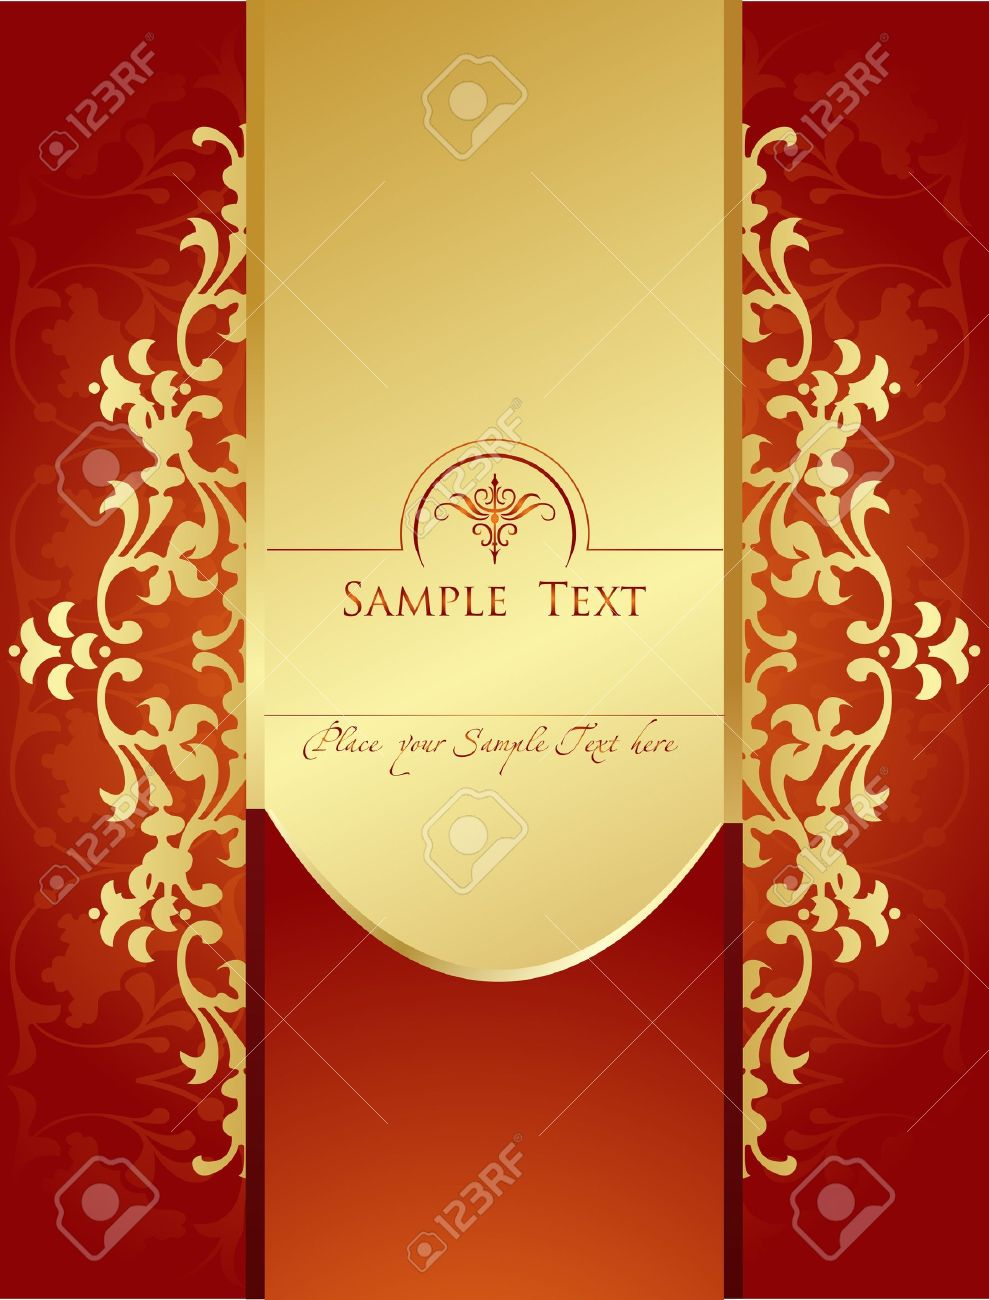 Vector Vintage background for book cover or card Stock Vector - 10339281